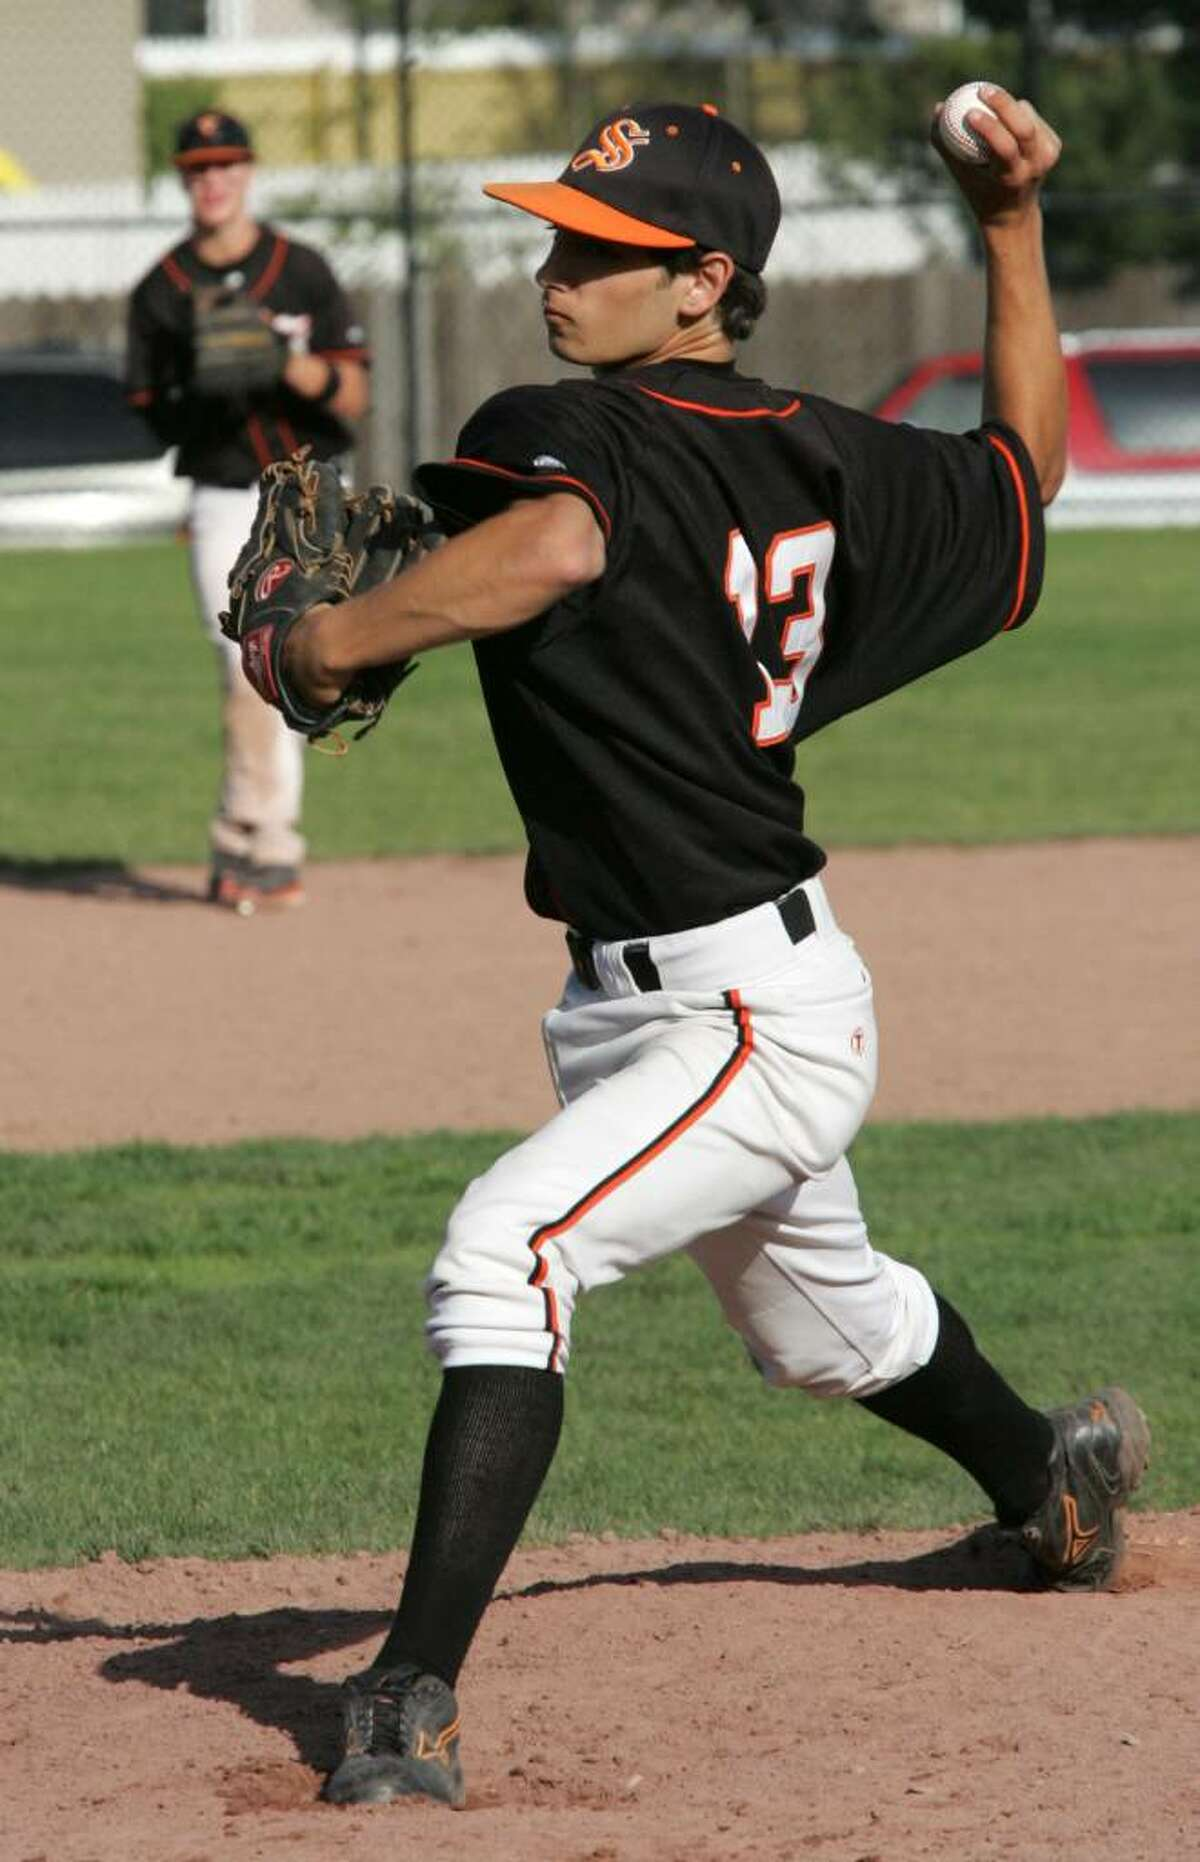 Stamford High School pitcher John McClafferty in action agains Ridgefield High School during Friday afternoons game held in Stamford.